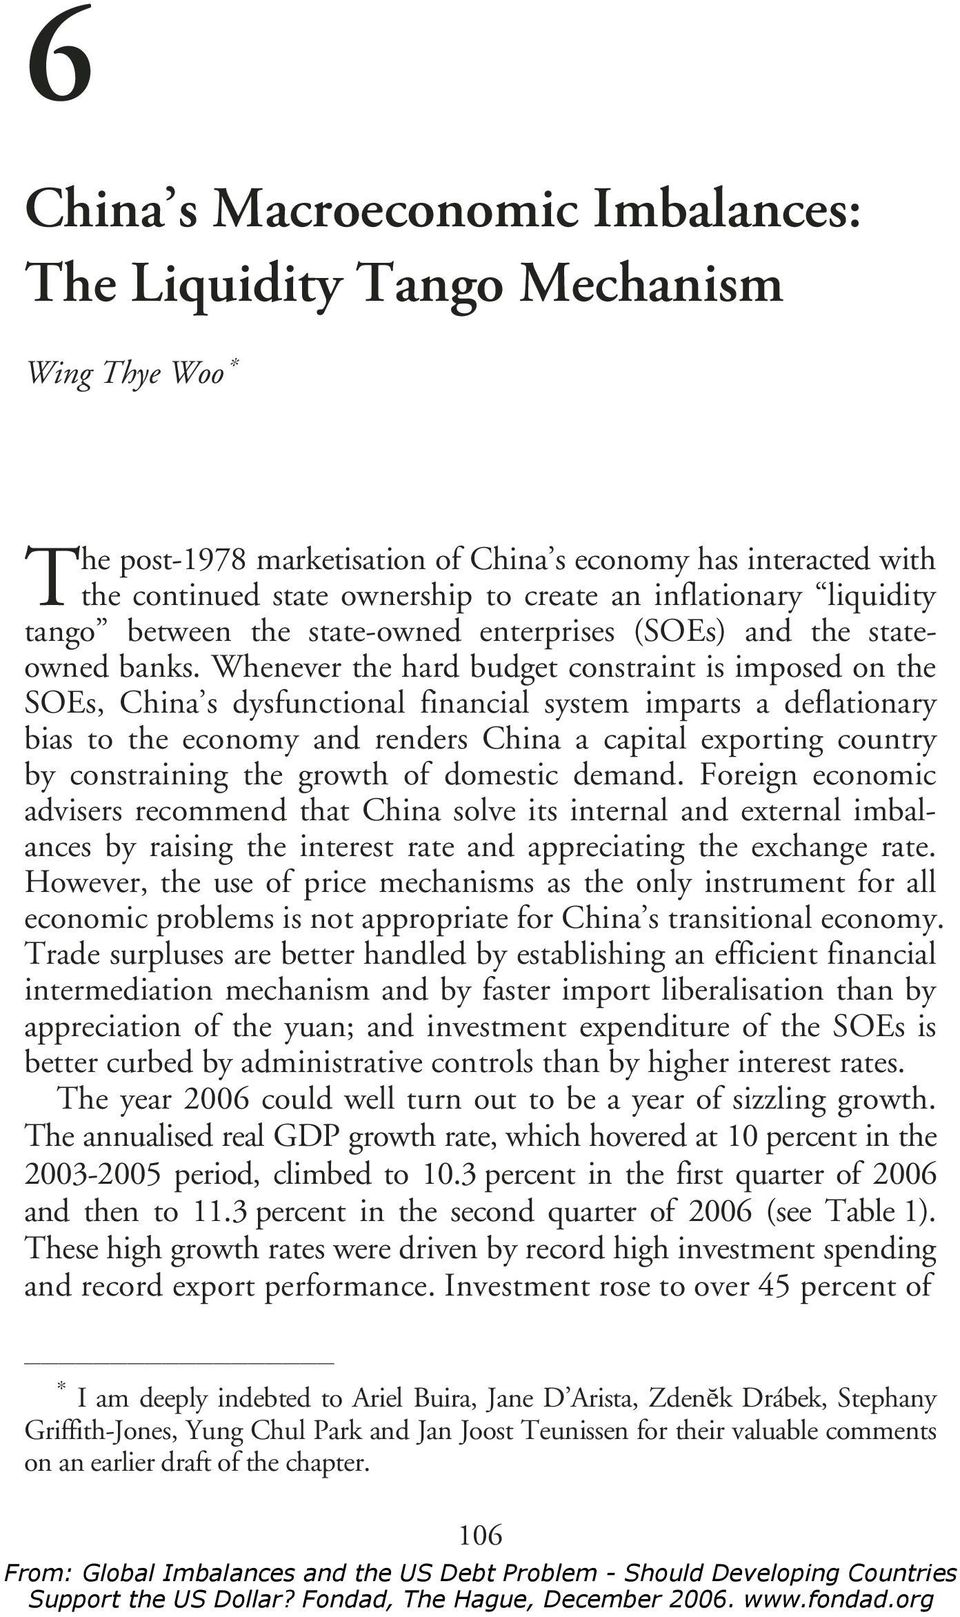 Whenever the hard budget constraint is imposed on the SOEs, China s dysfunctional financial system imparts a deflationary bias to the economy and renders China a capital exporting country by